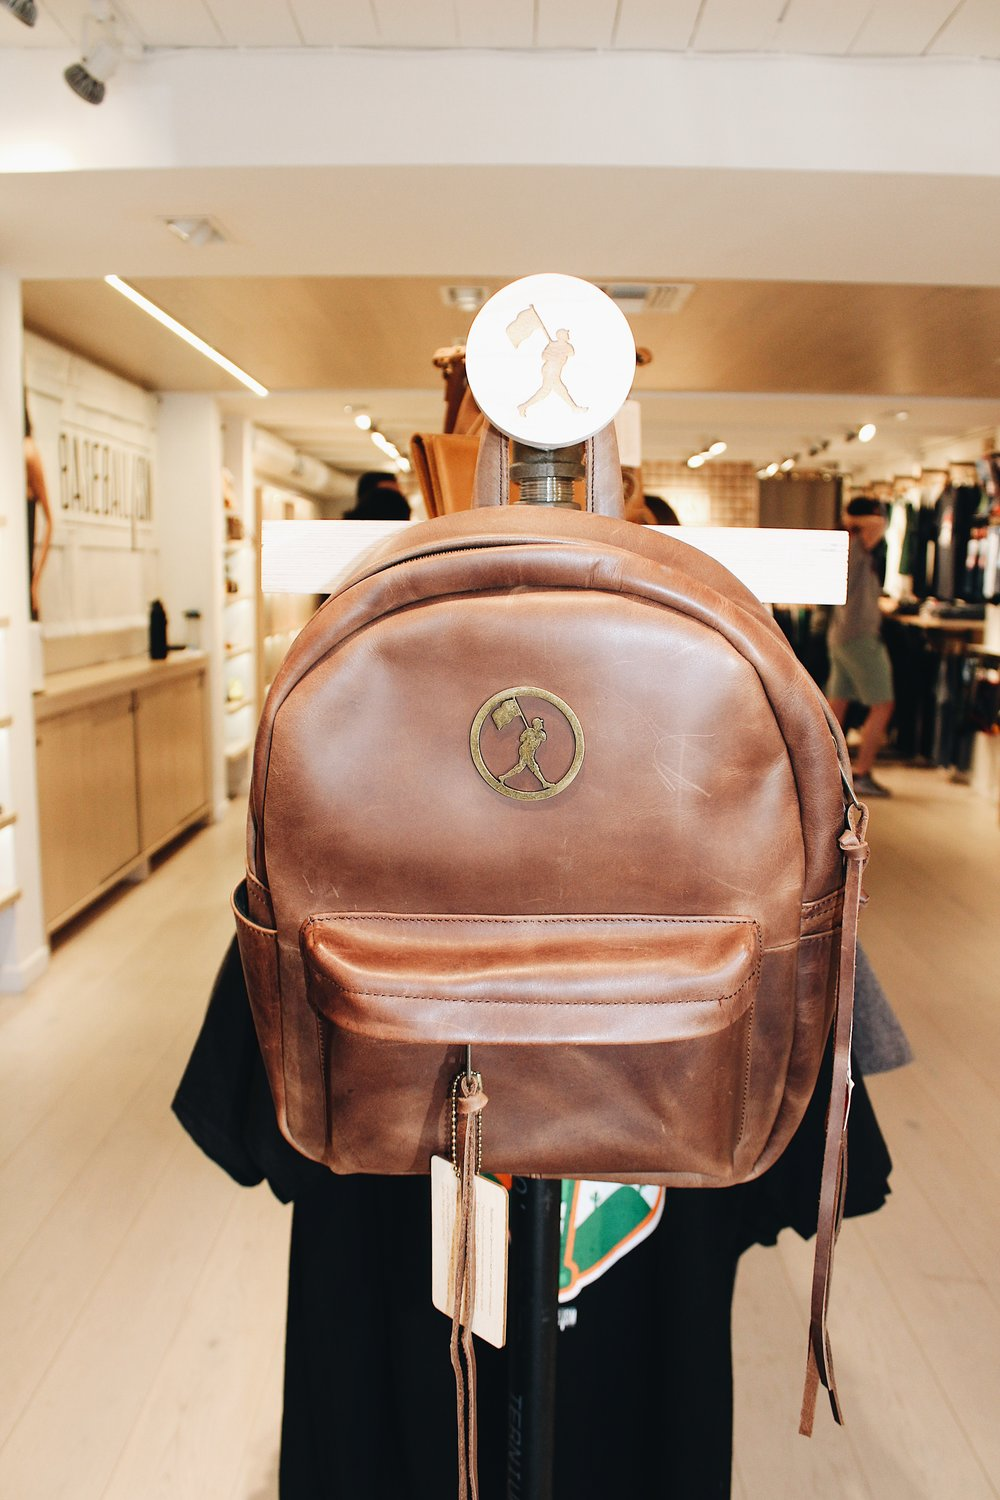 baseballism backpack.JPG